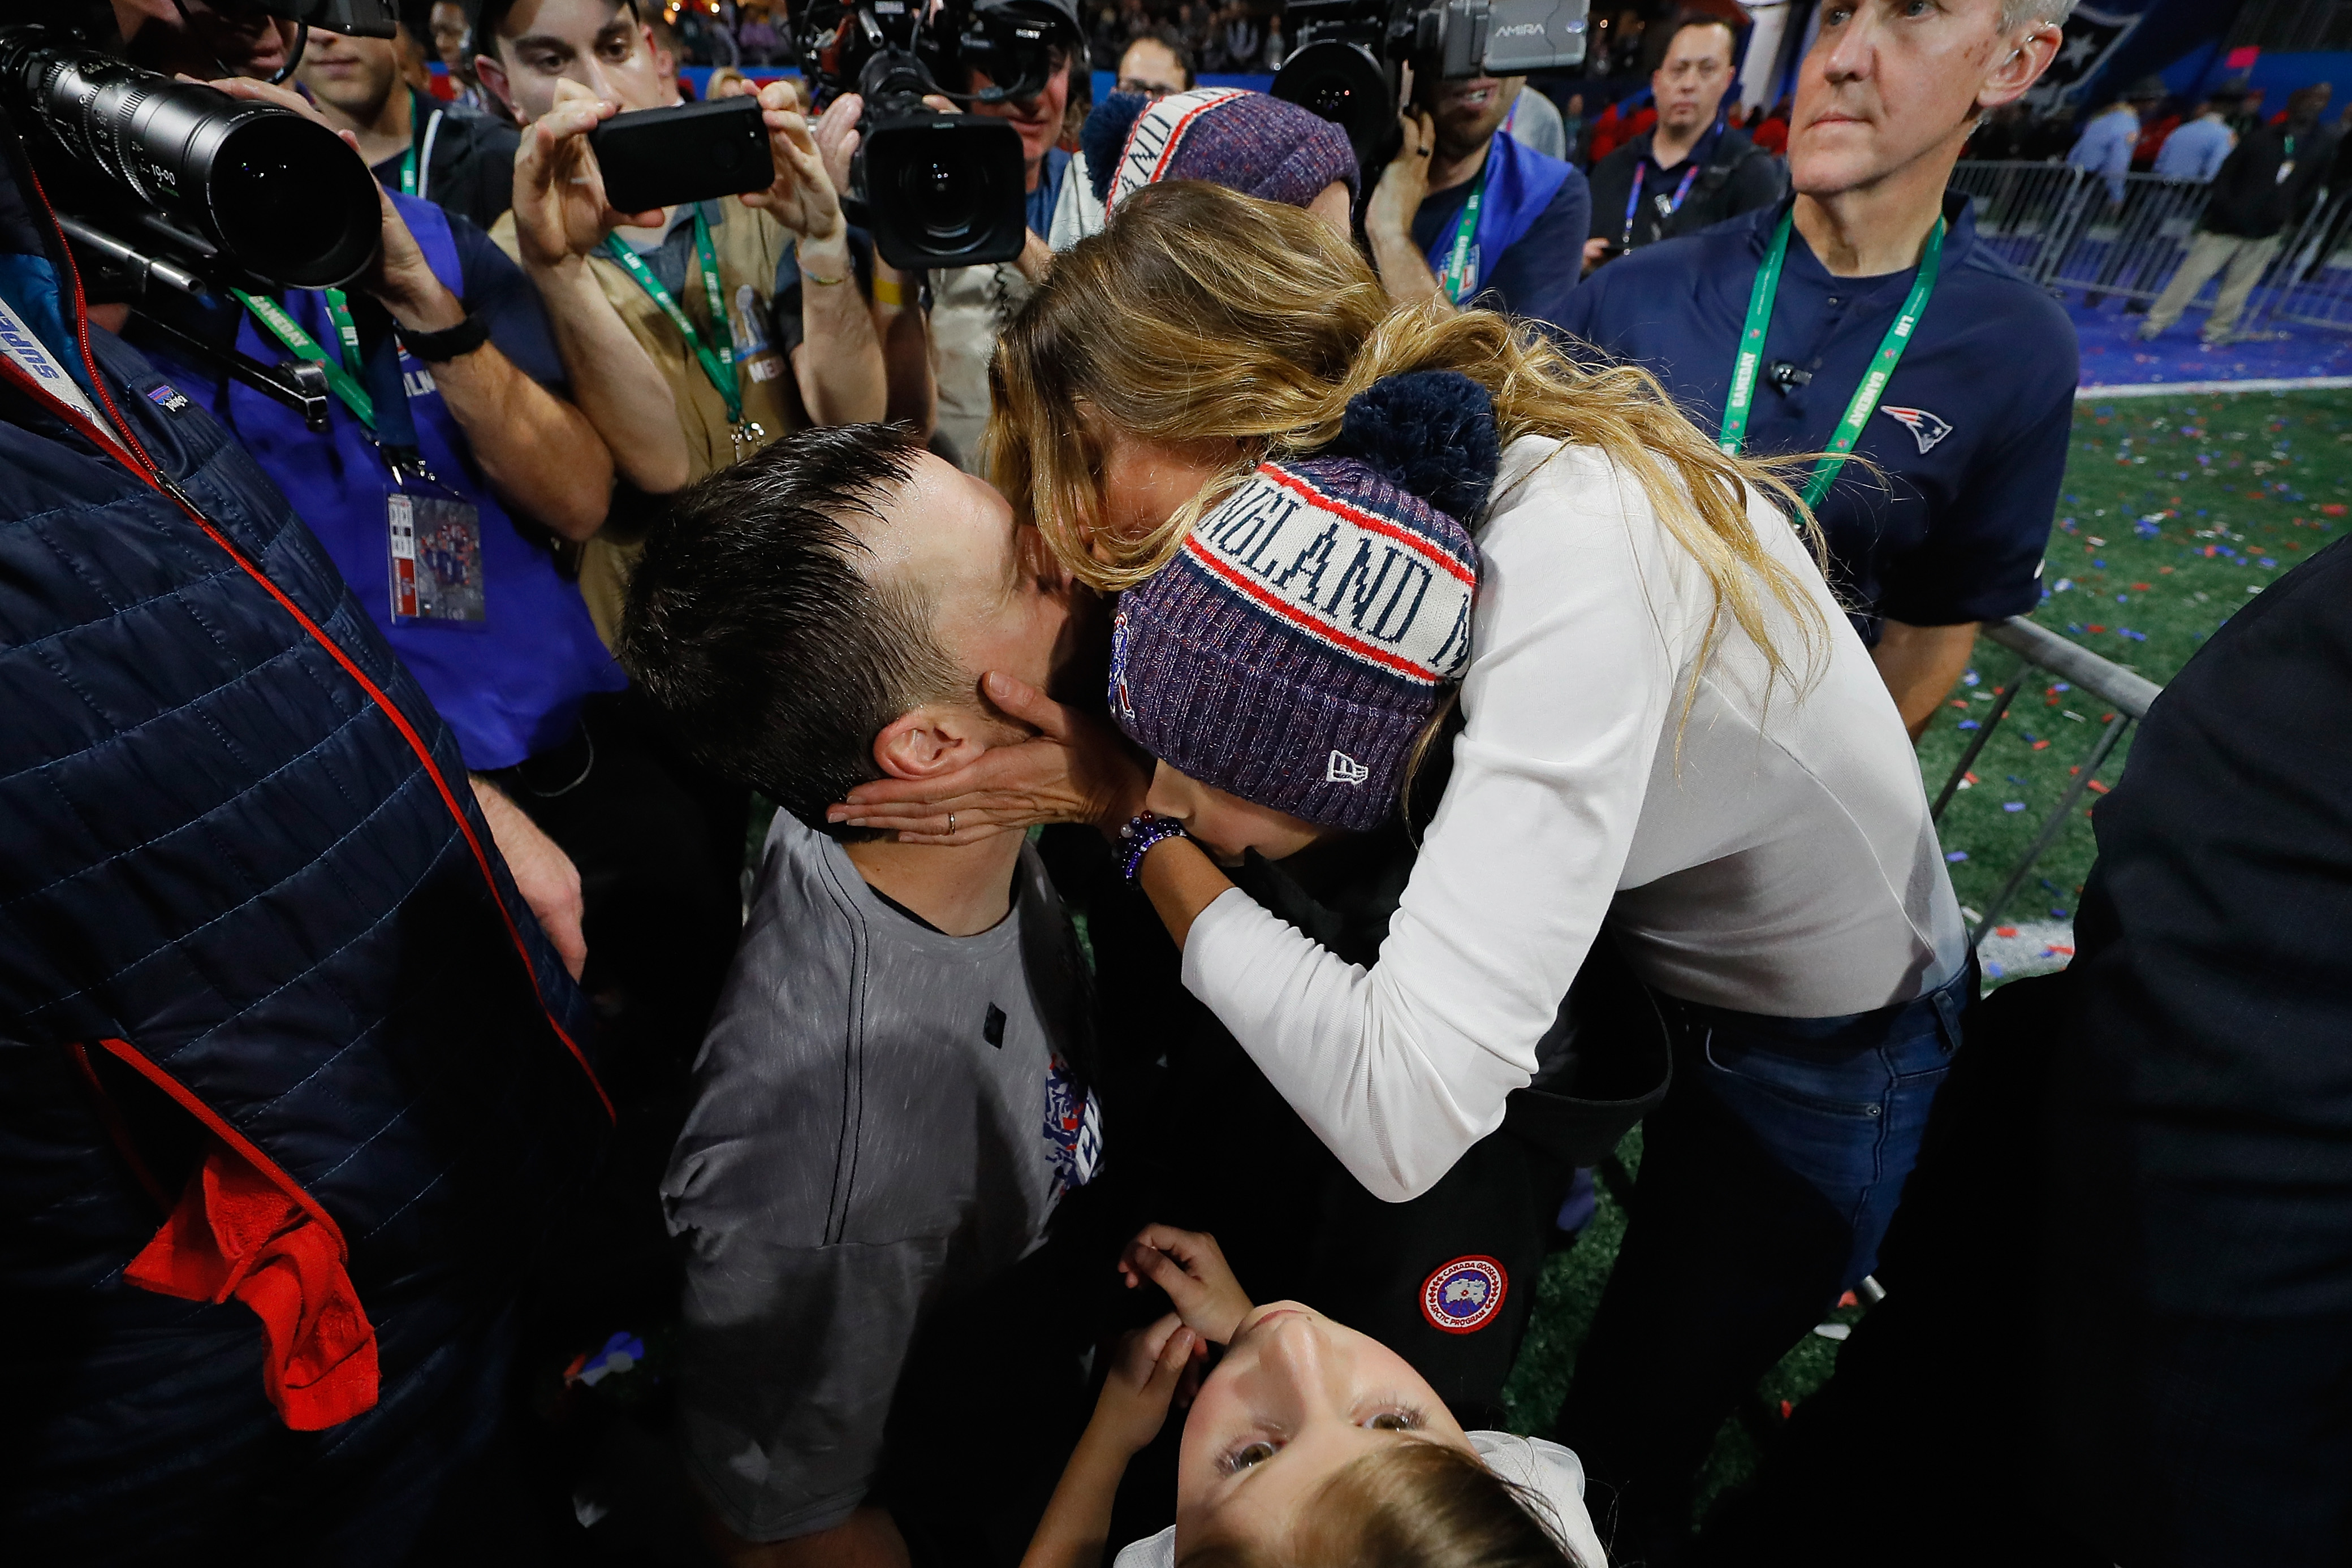 Super Bowl LIII - Tom Brady kisses his wife Gisele Bundchen after the Patriots win Sup